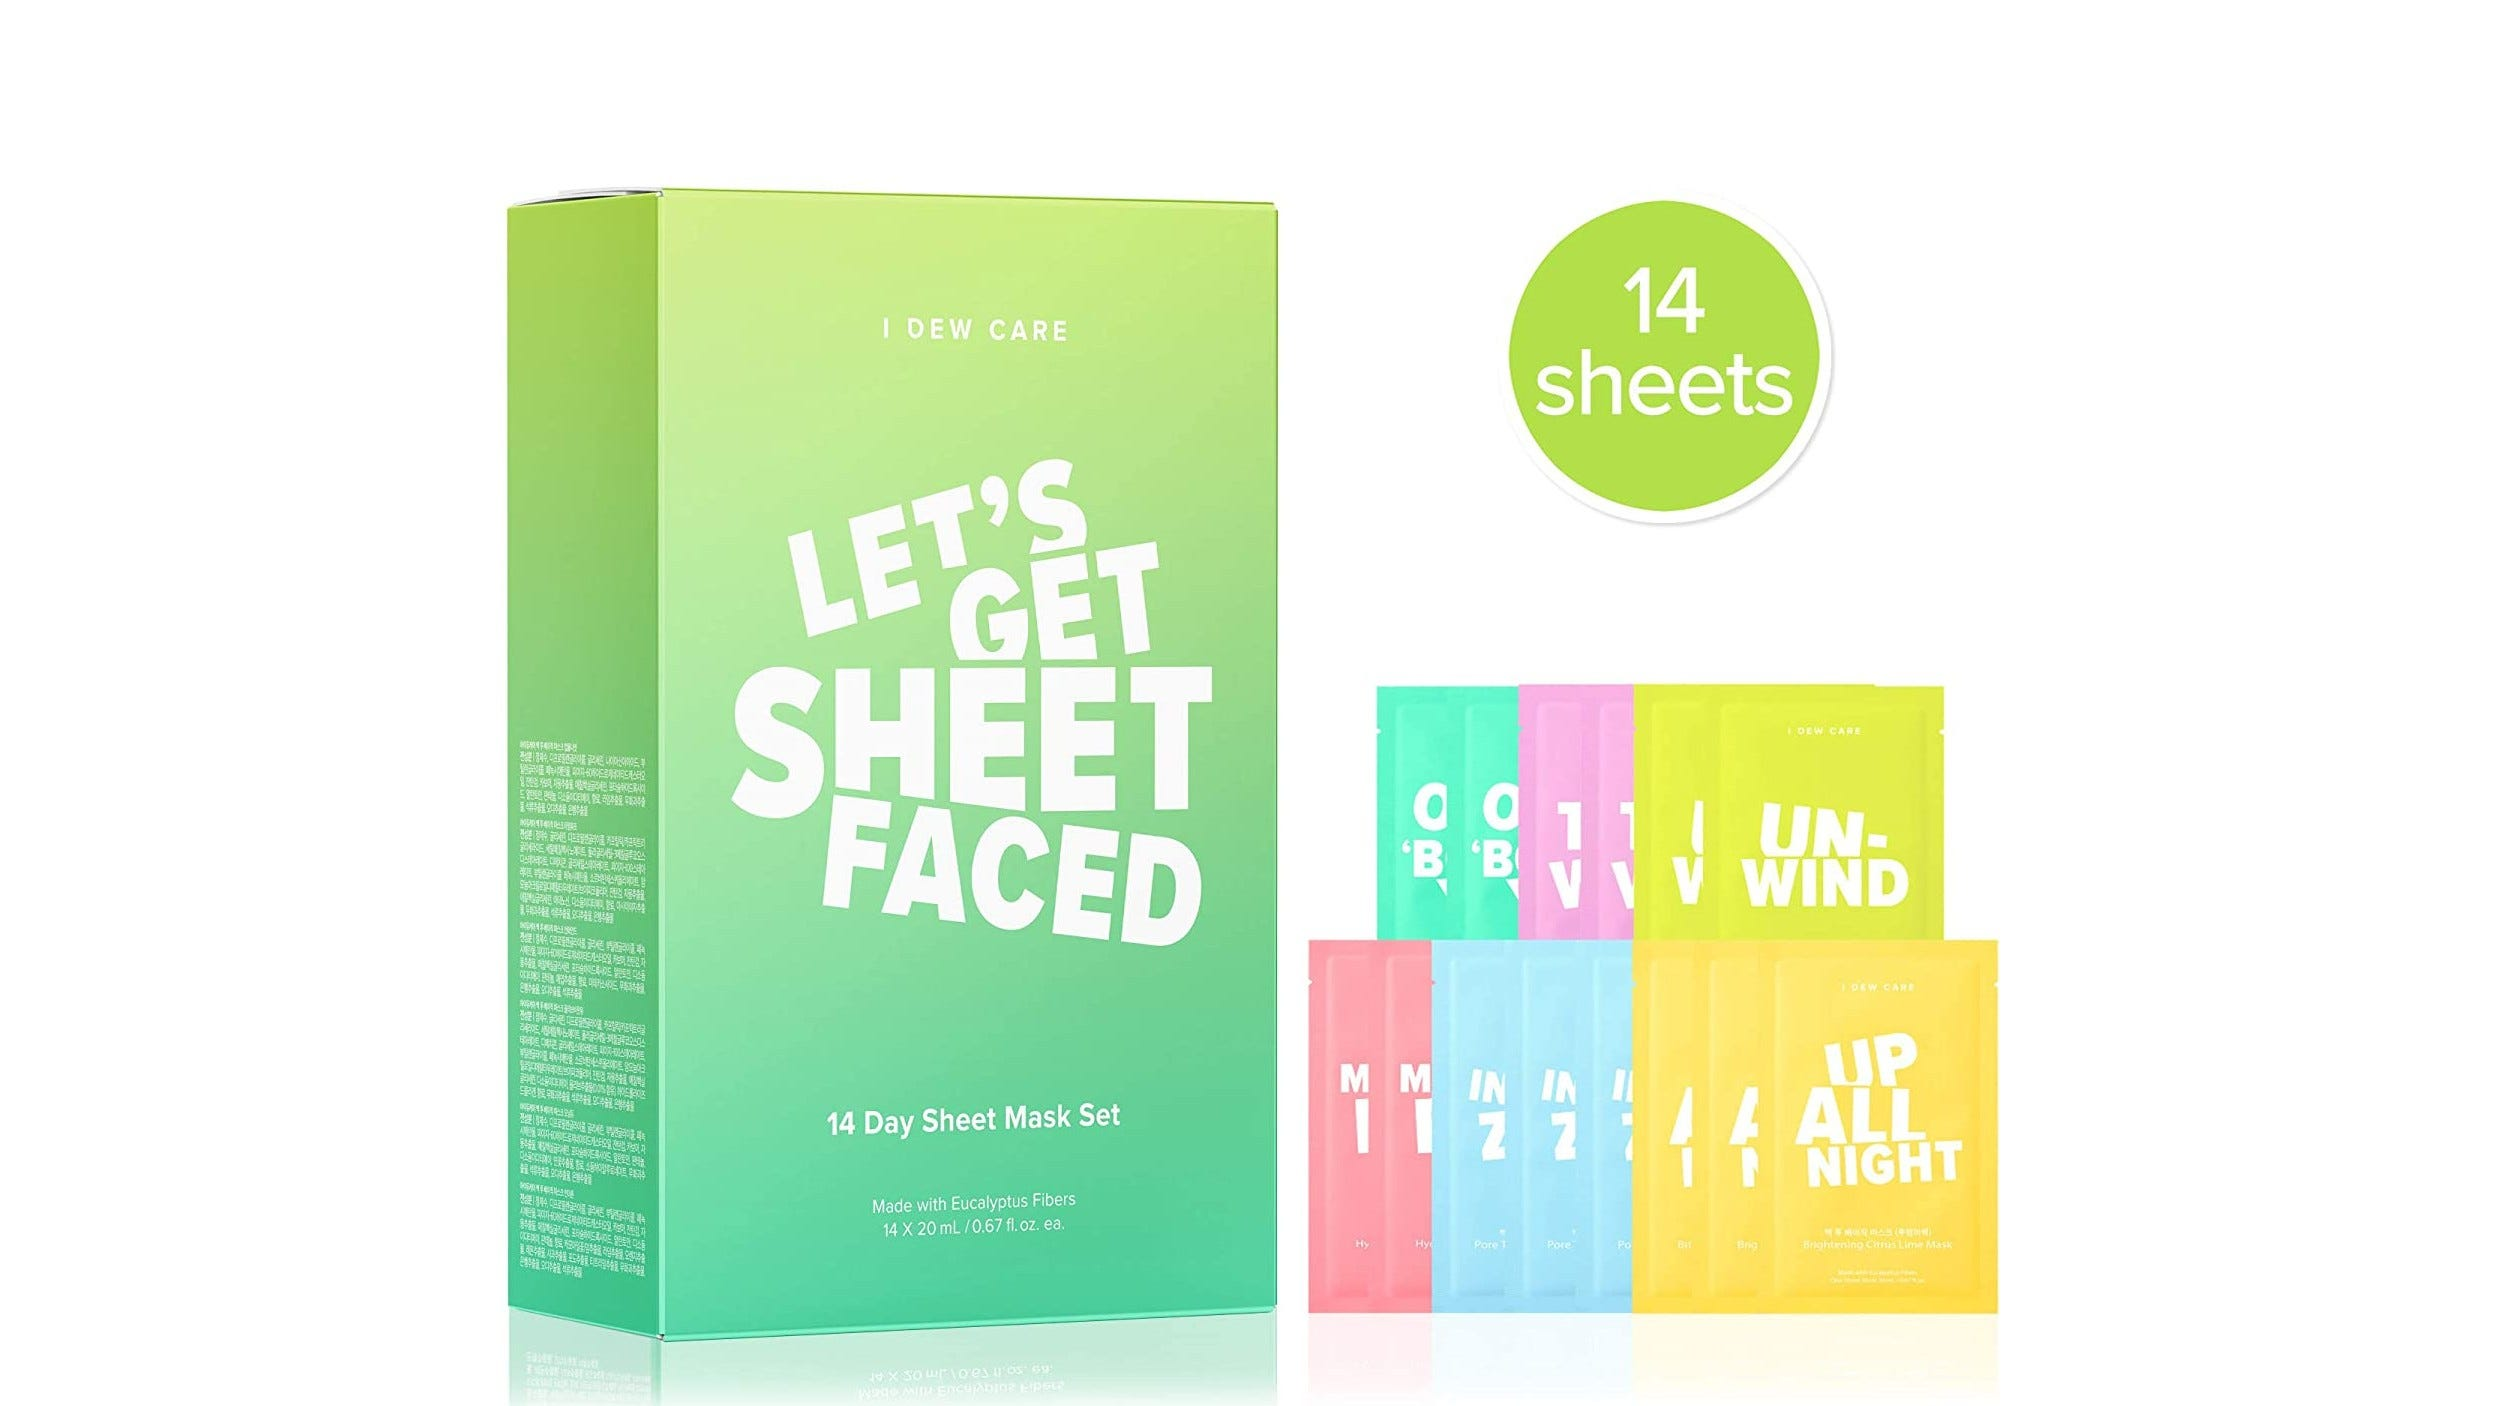 I Dew Care Let's Get Sheet Faced Mask Packs and box.